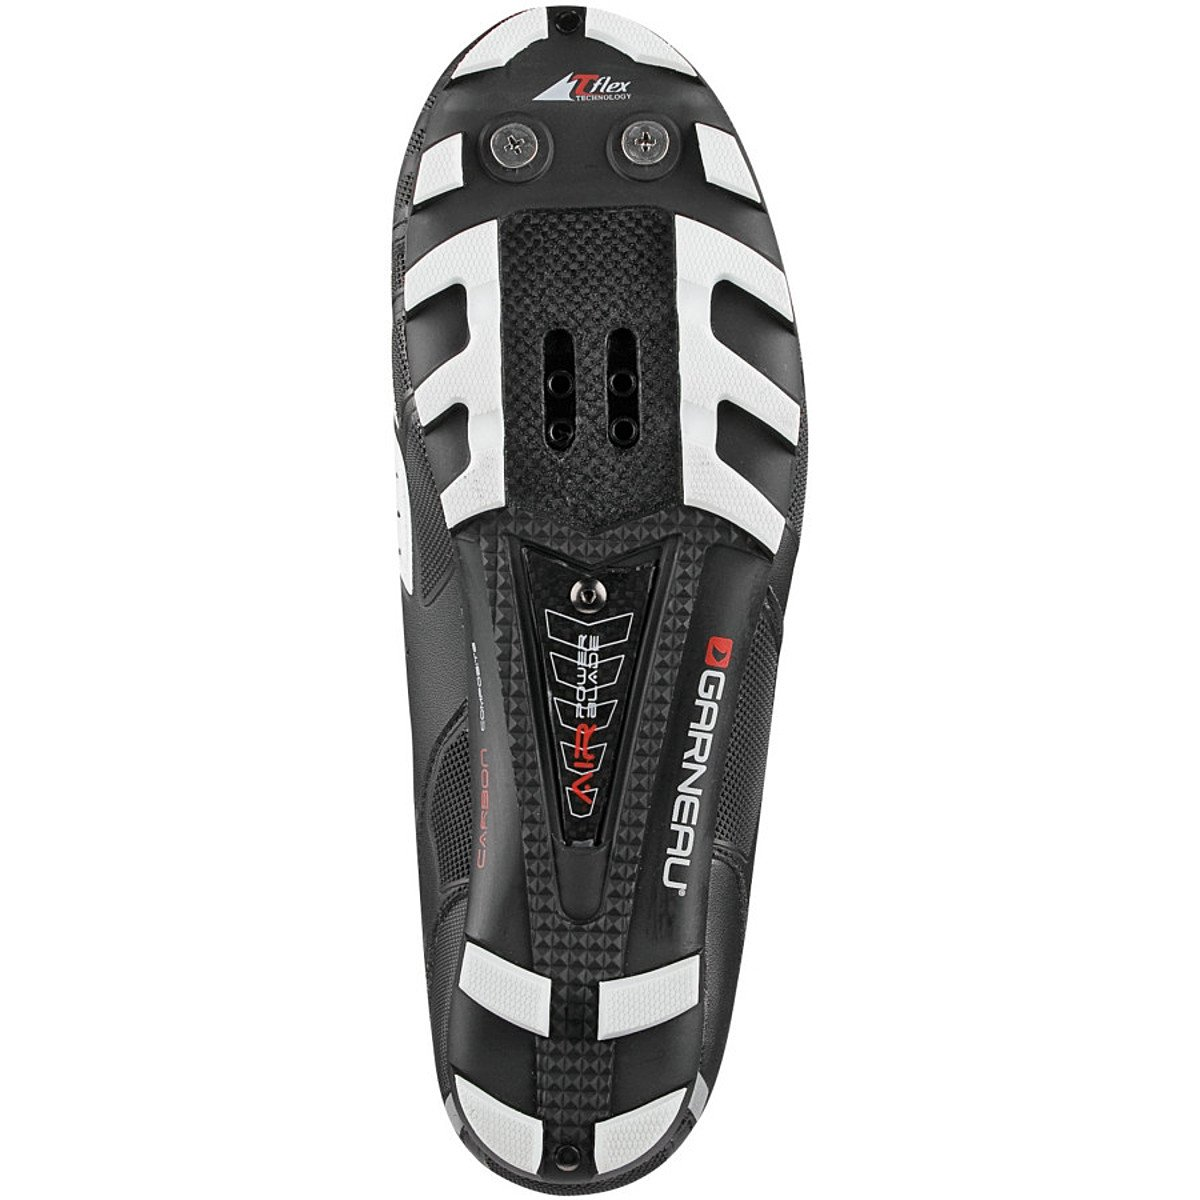 Amazon.com: Louis Garneau T-Flex LS 100 Mountain Bike Shoes Black-37: Shoes